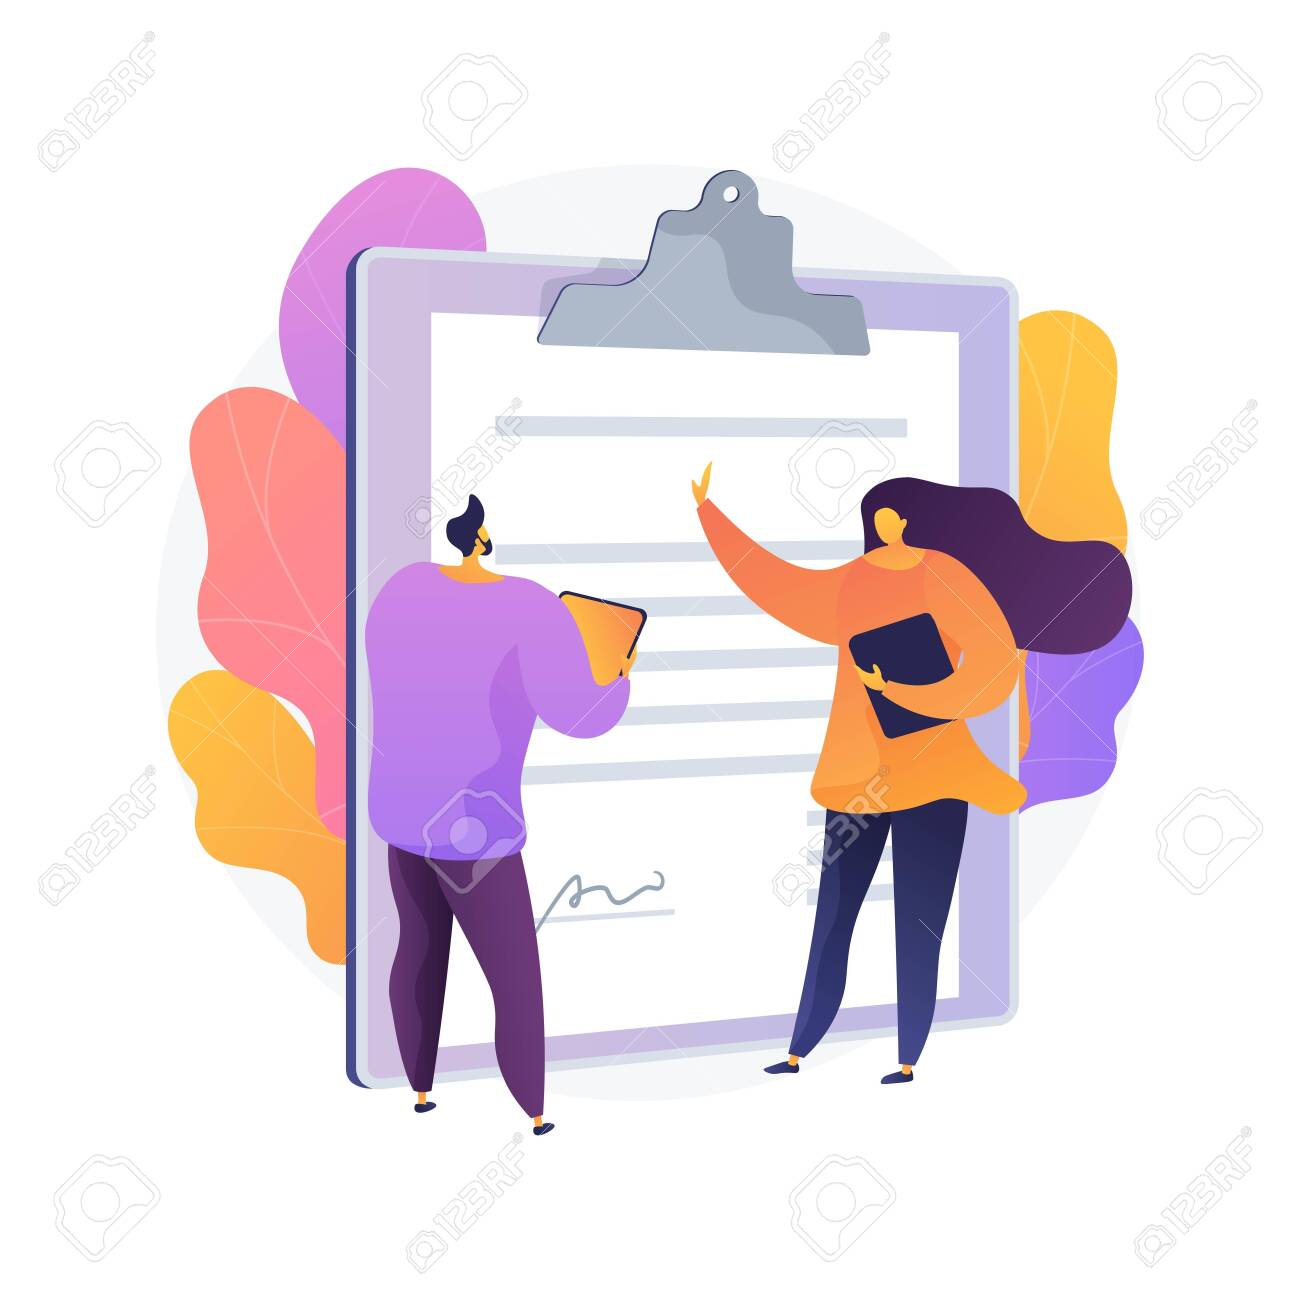 Document signing. Partnership deal, business consultation, work arrangement. Client and assistant writing contract cartoon characters. Vector isolated concept metaphor illustration - 135901692